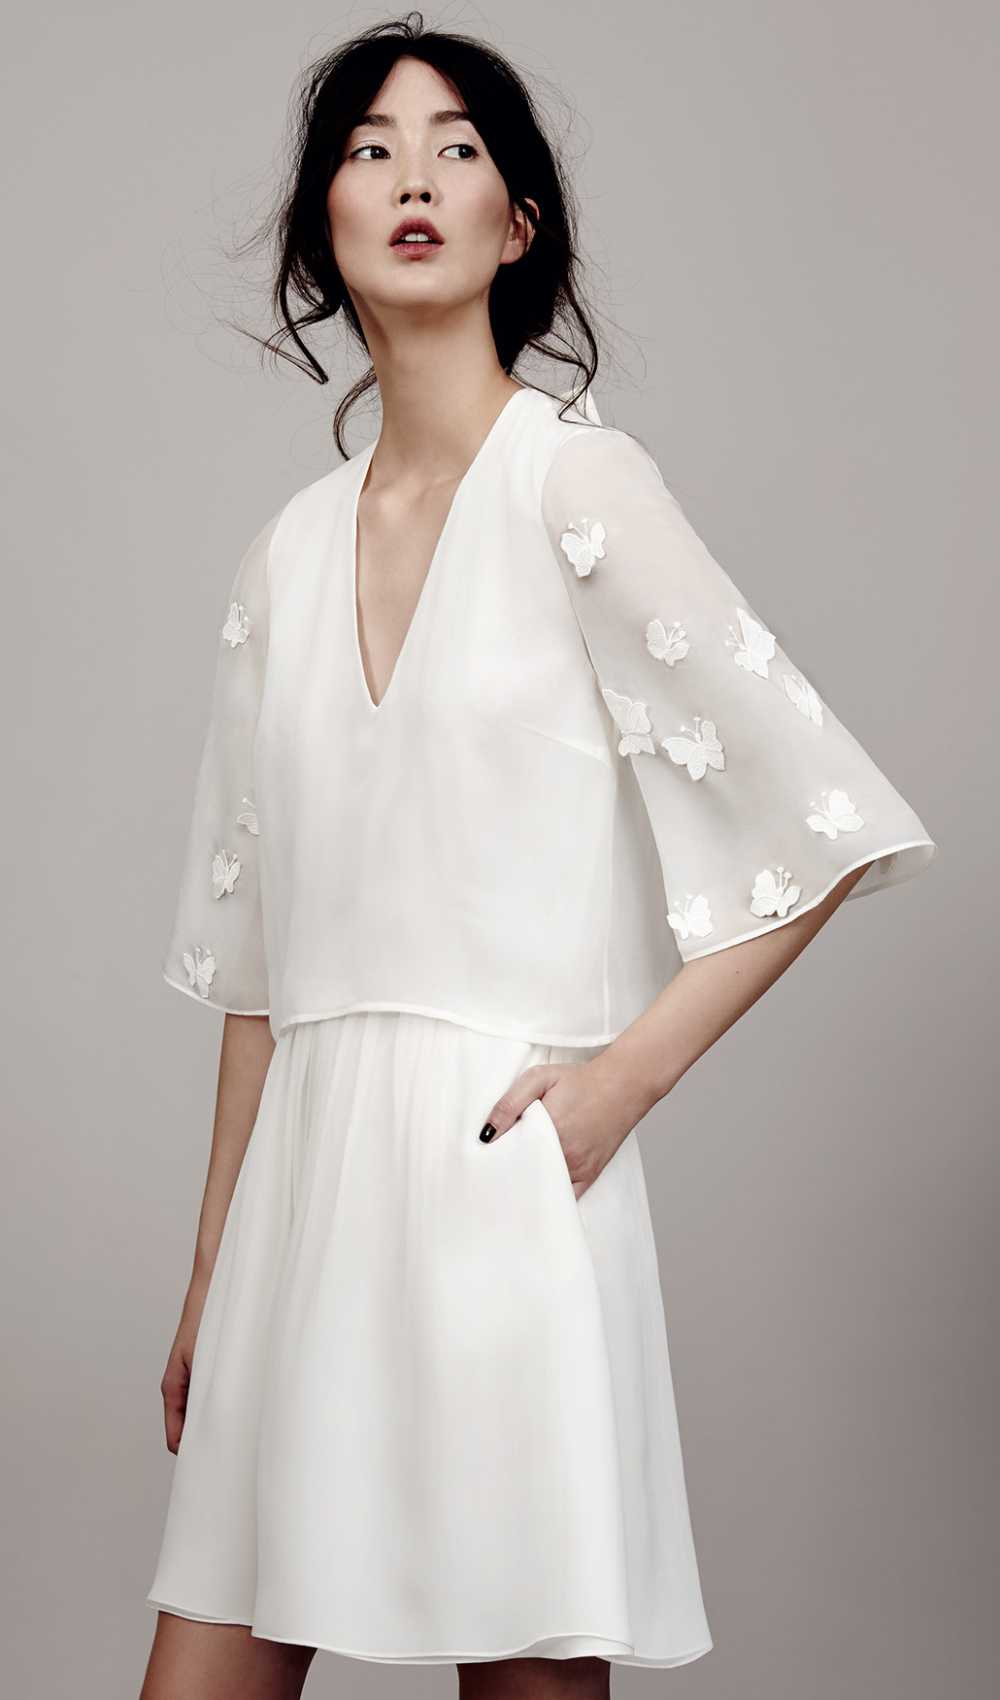 Mini Weddings Dress Papillon Sleeve by Kaviar Gauche